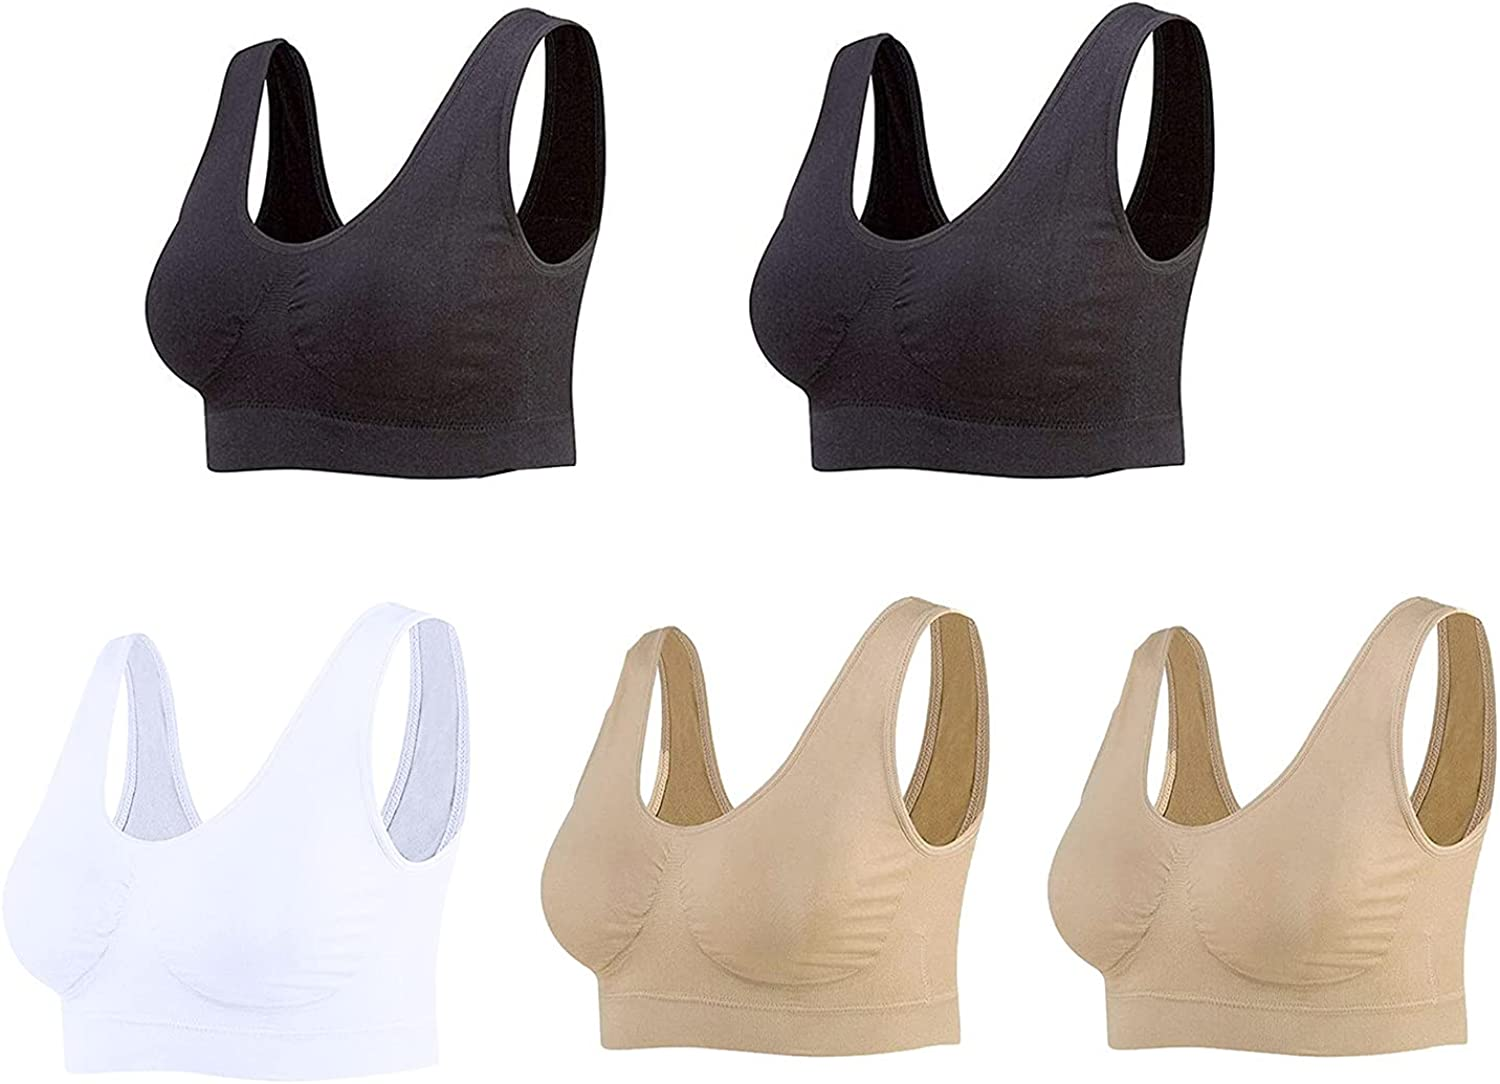 Sports Bras for Women, Seamless Comfortable Yoga Bra with Removable Pads Sexy Gift Set for Girls in All Seasons 5PC